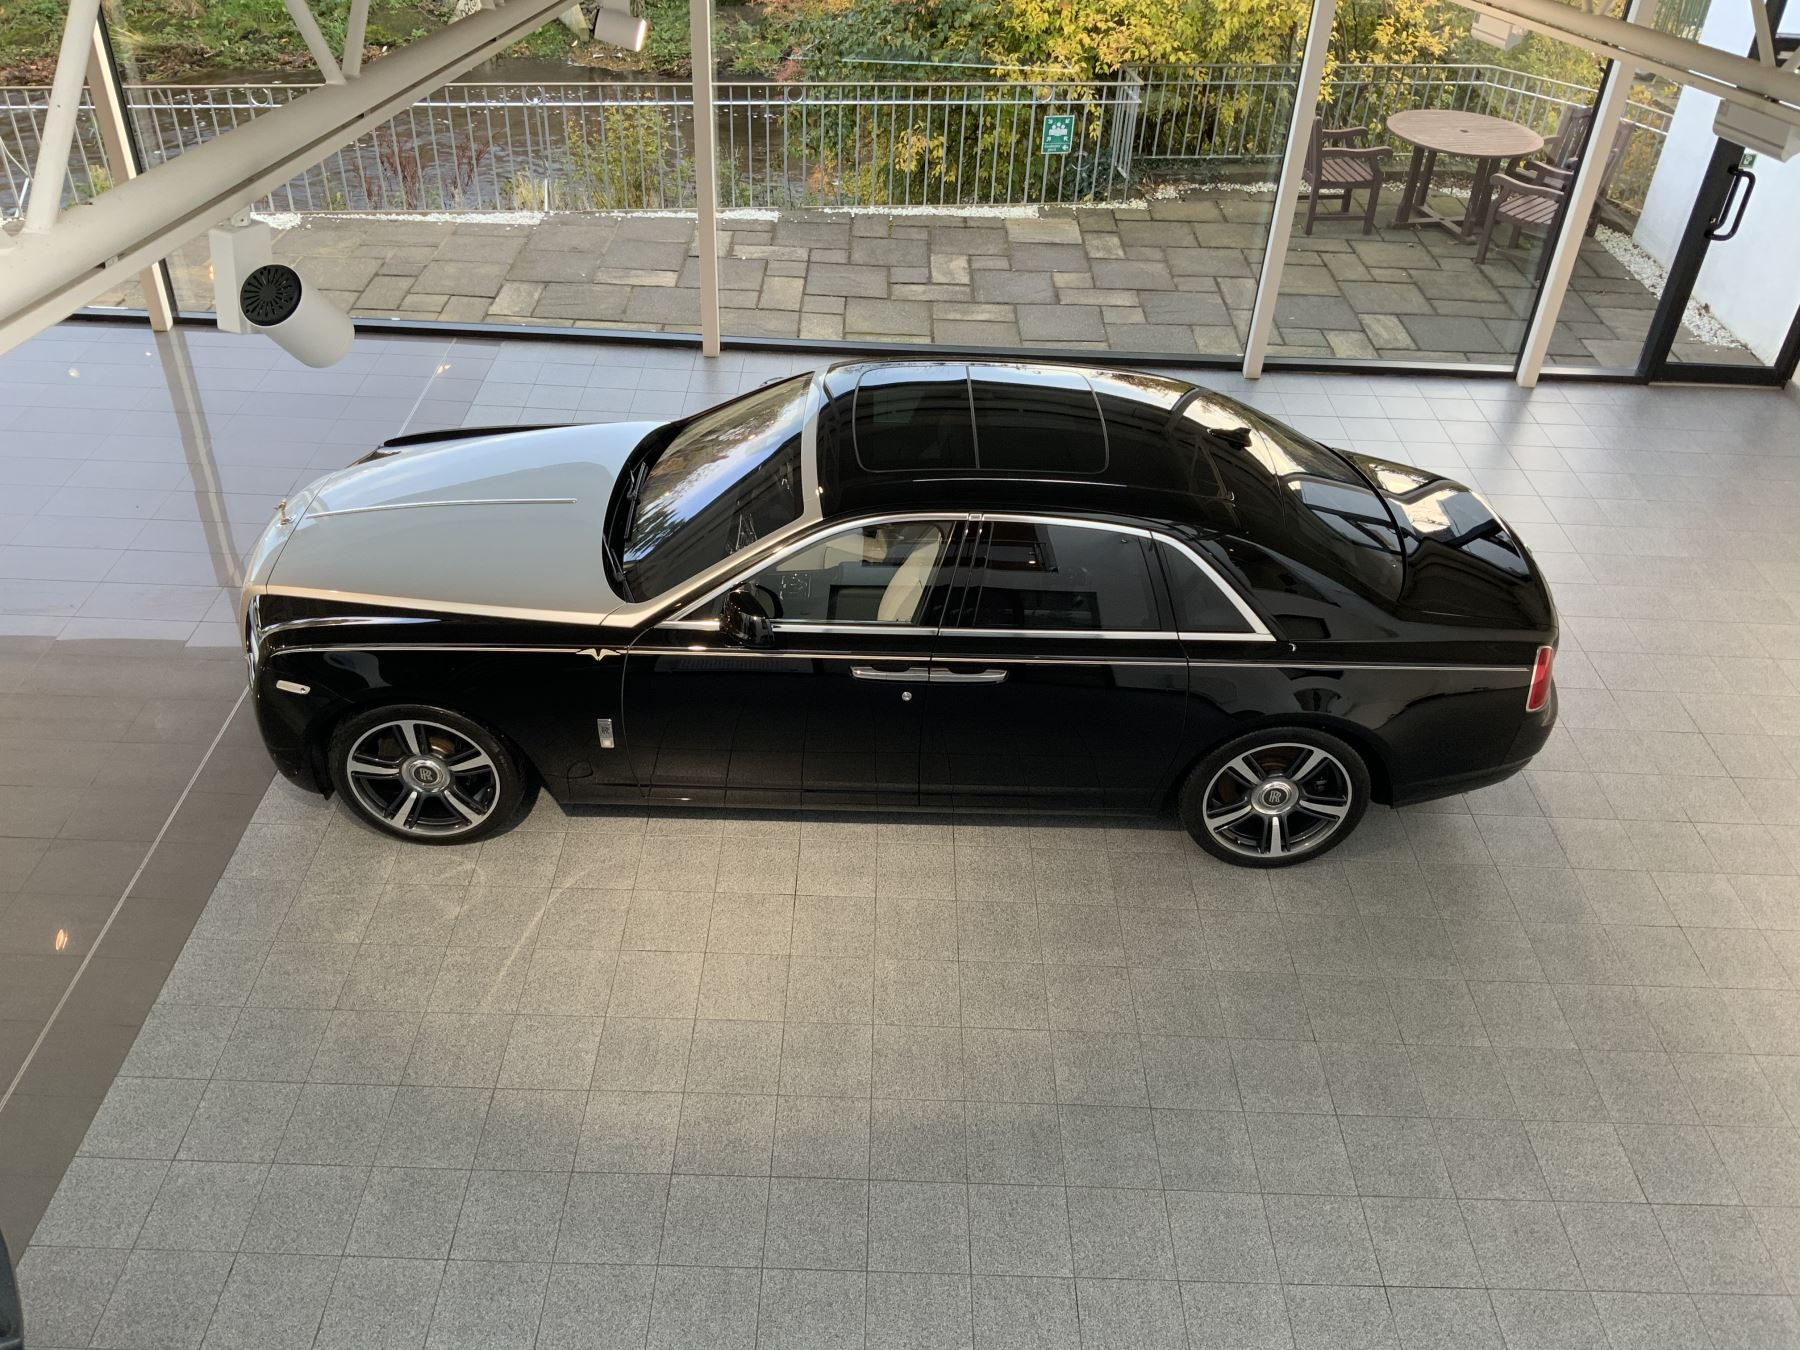 Rolls-Royce Ghost V-SPEC 4dr Auto image 24